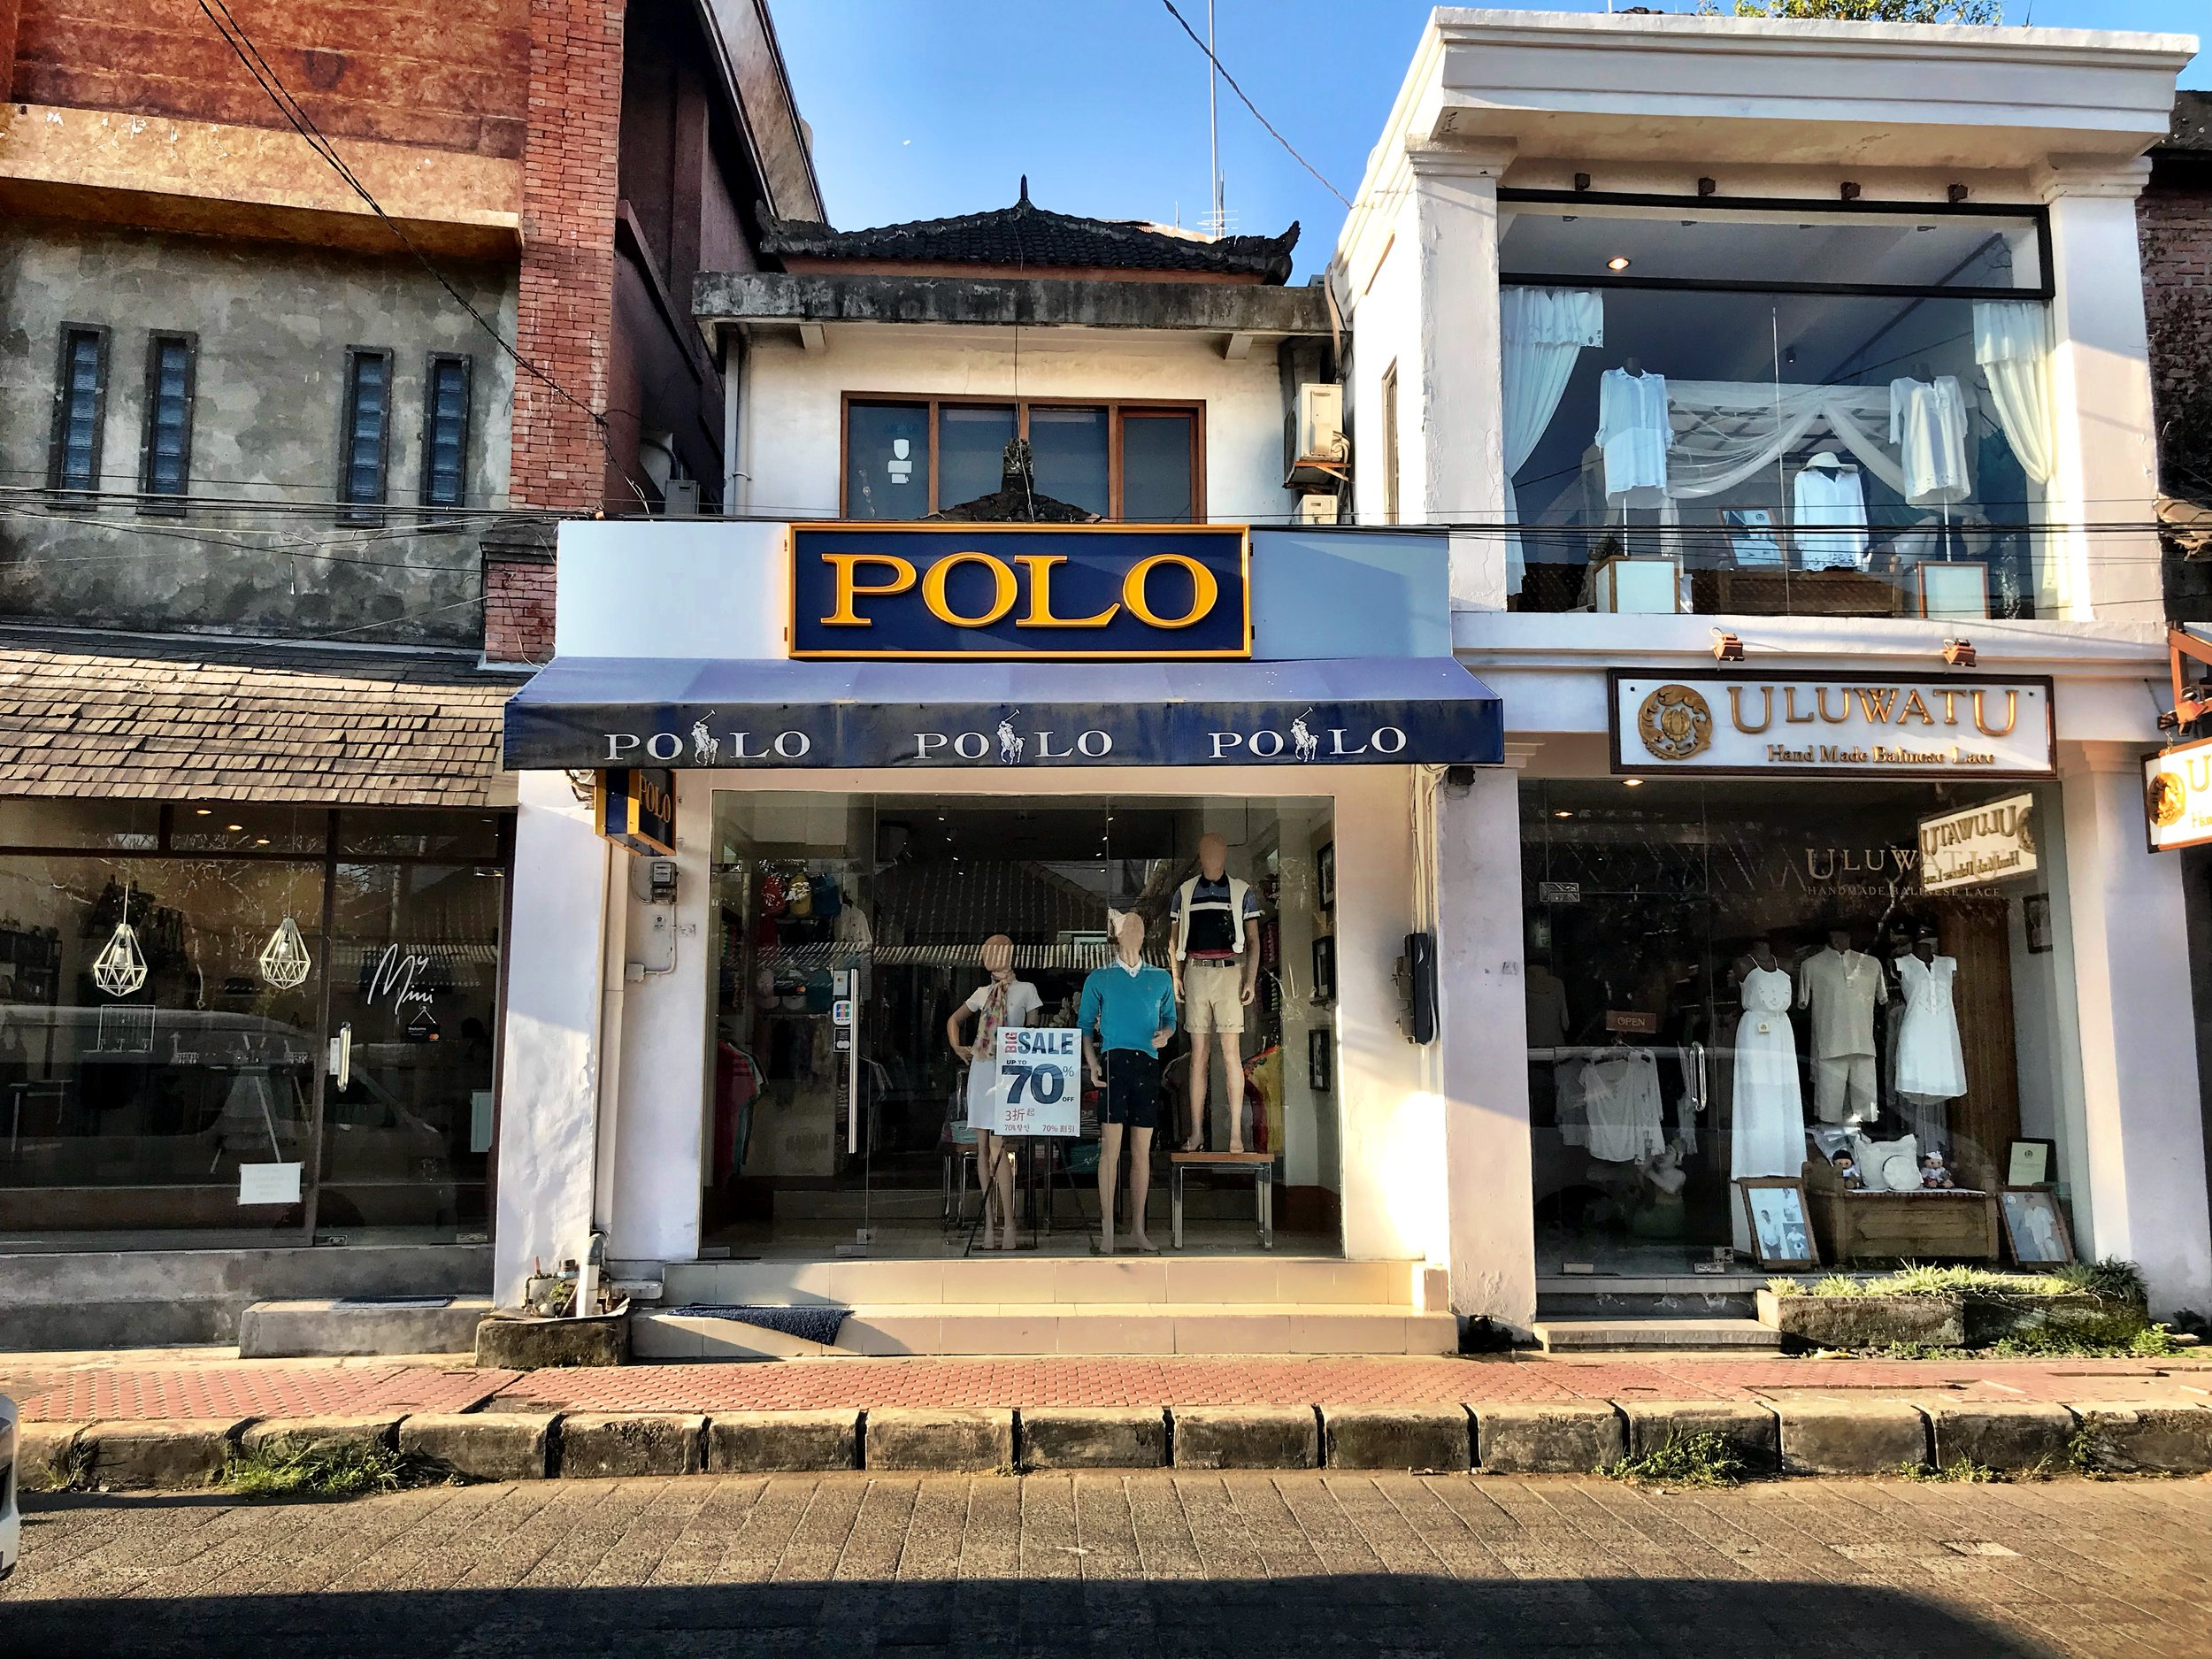 Are these officially licensed Ralph Lauren stores? Probably not